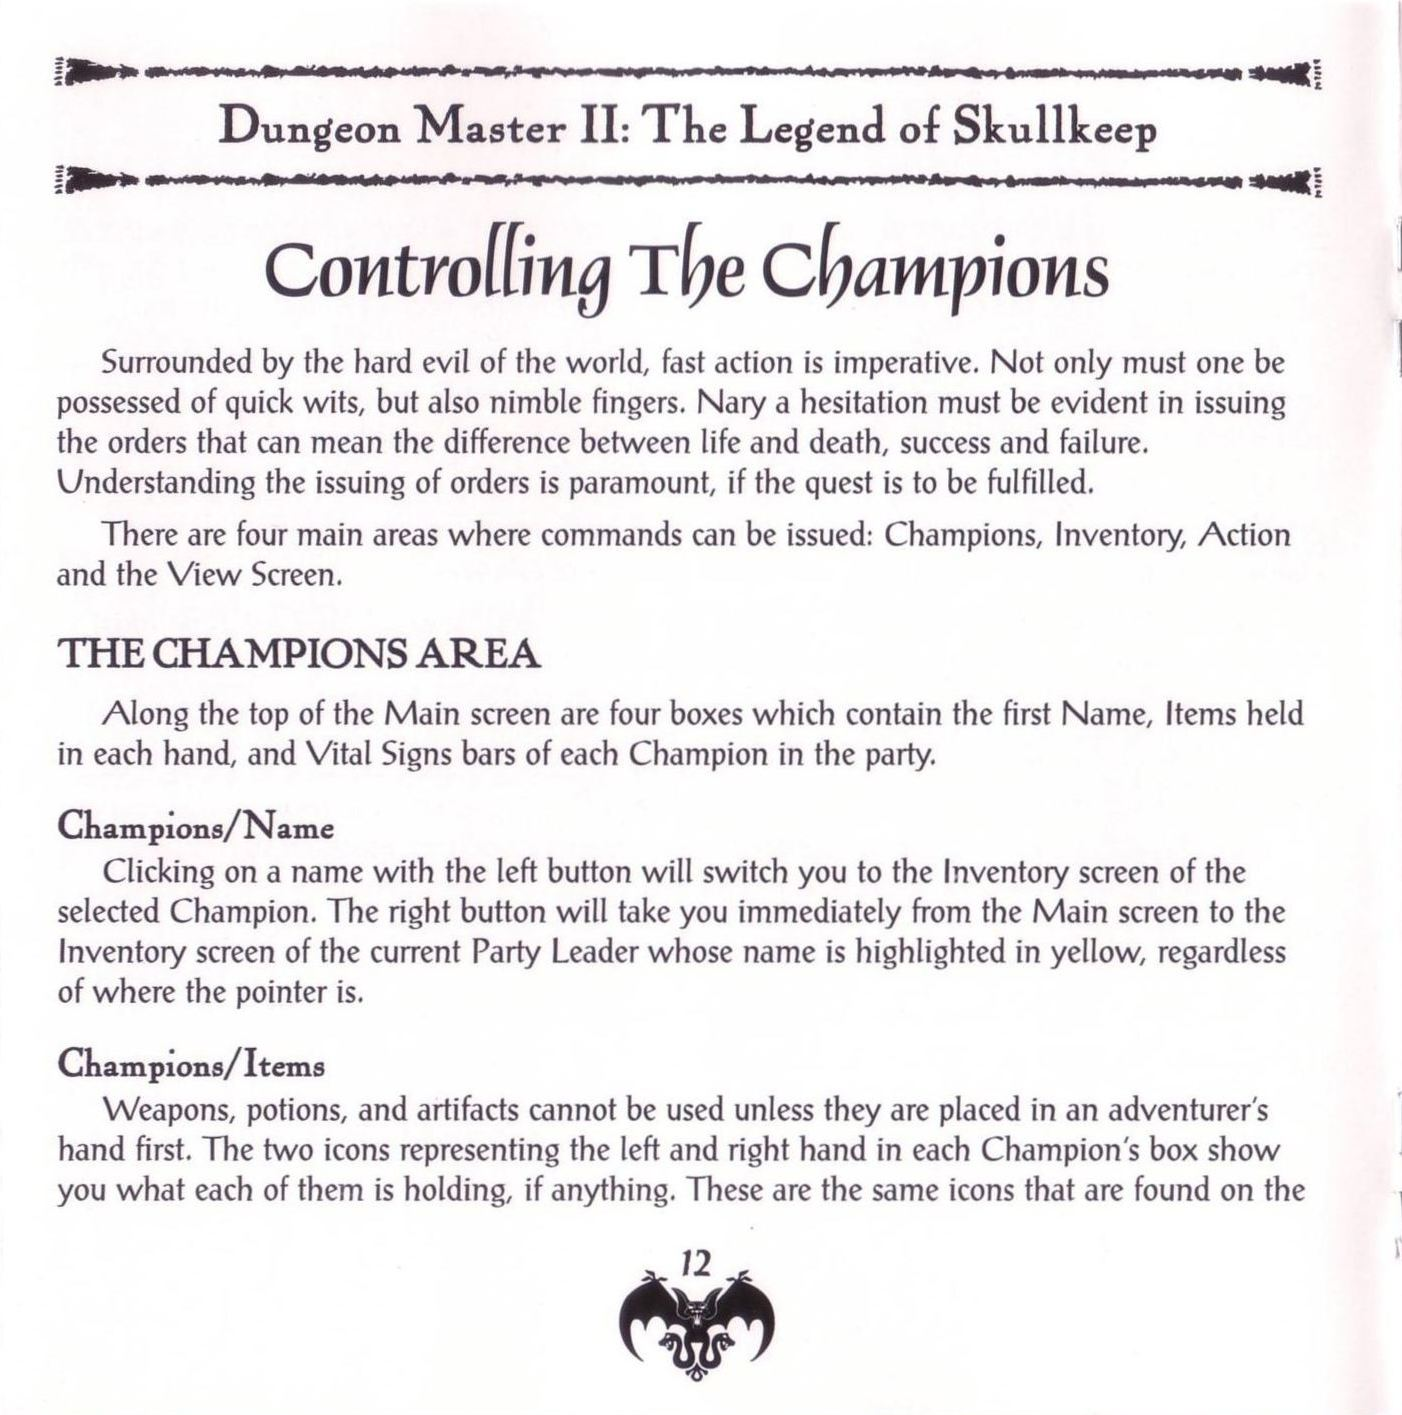 Game - Dungeon Master II - US - PC - Jewel Case - Booklet - Page 014 - Scan